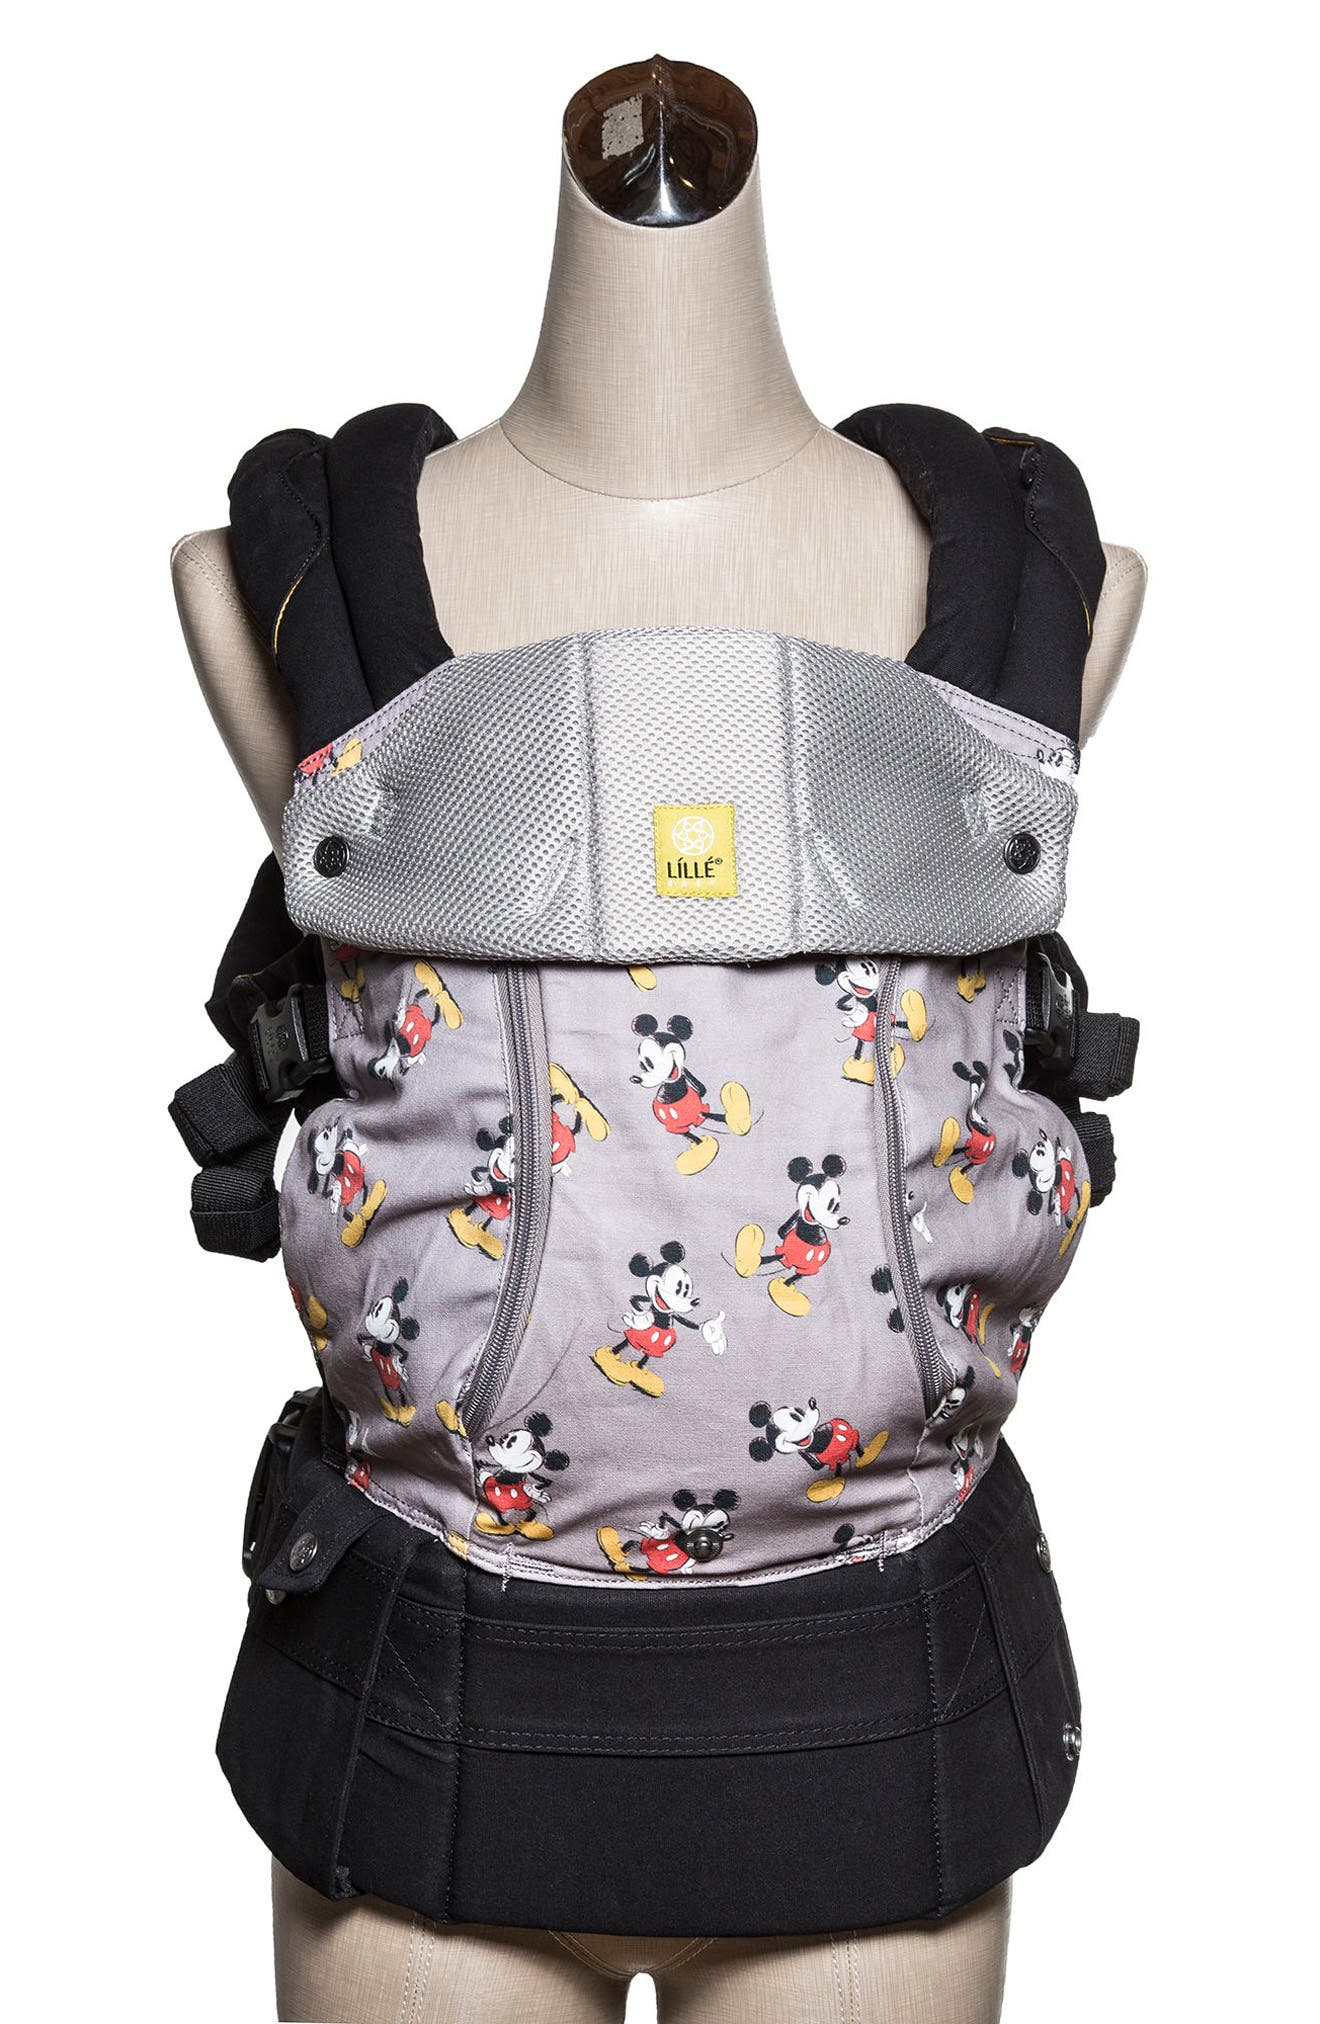 x Disney<sup>®</sup> Complete All Seasons - Mickey Mouse Classic Baby Carrier,                             Main thumbnail 1, color,                             001